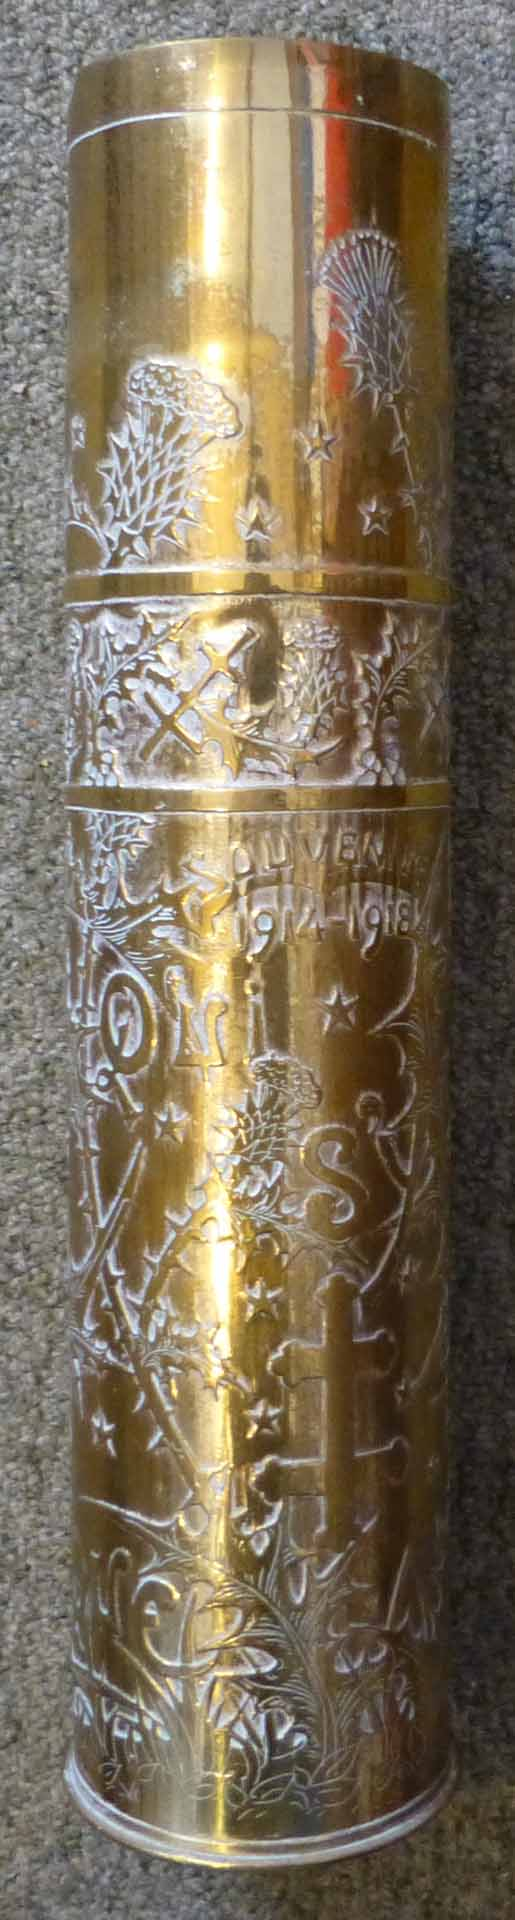 acid etched trench art